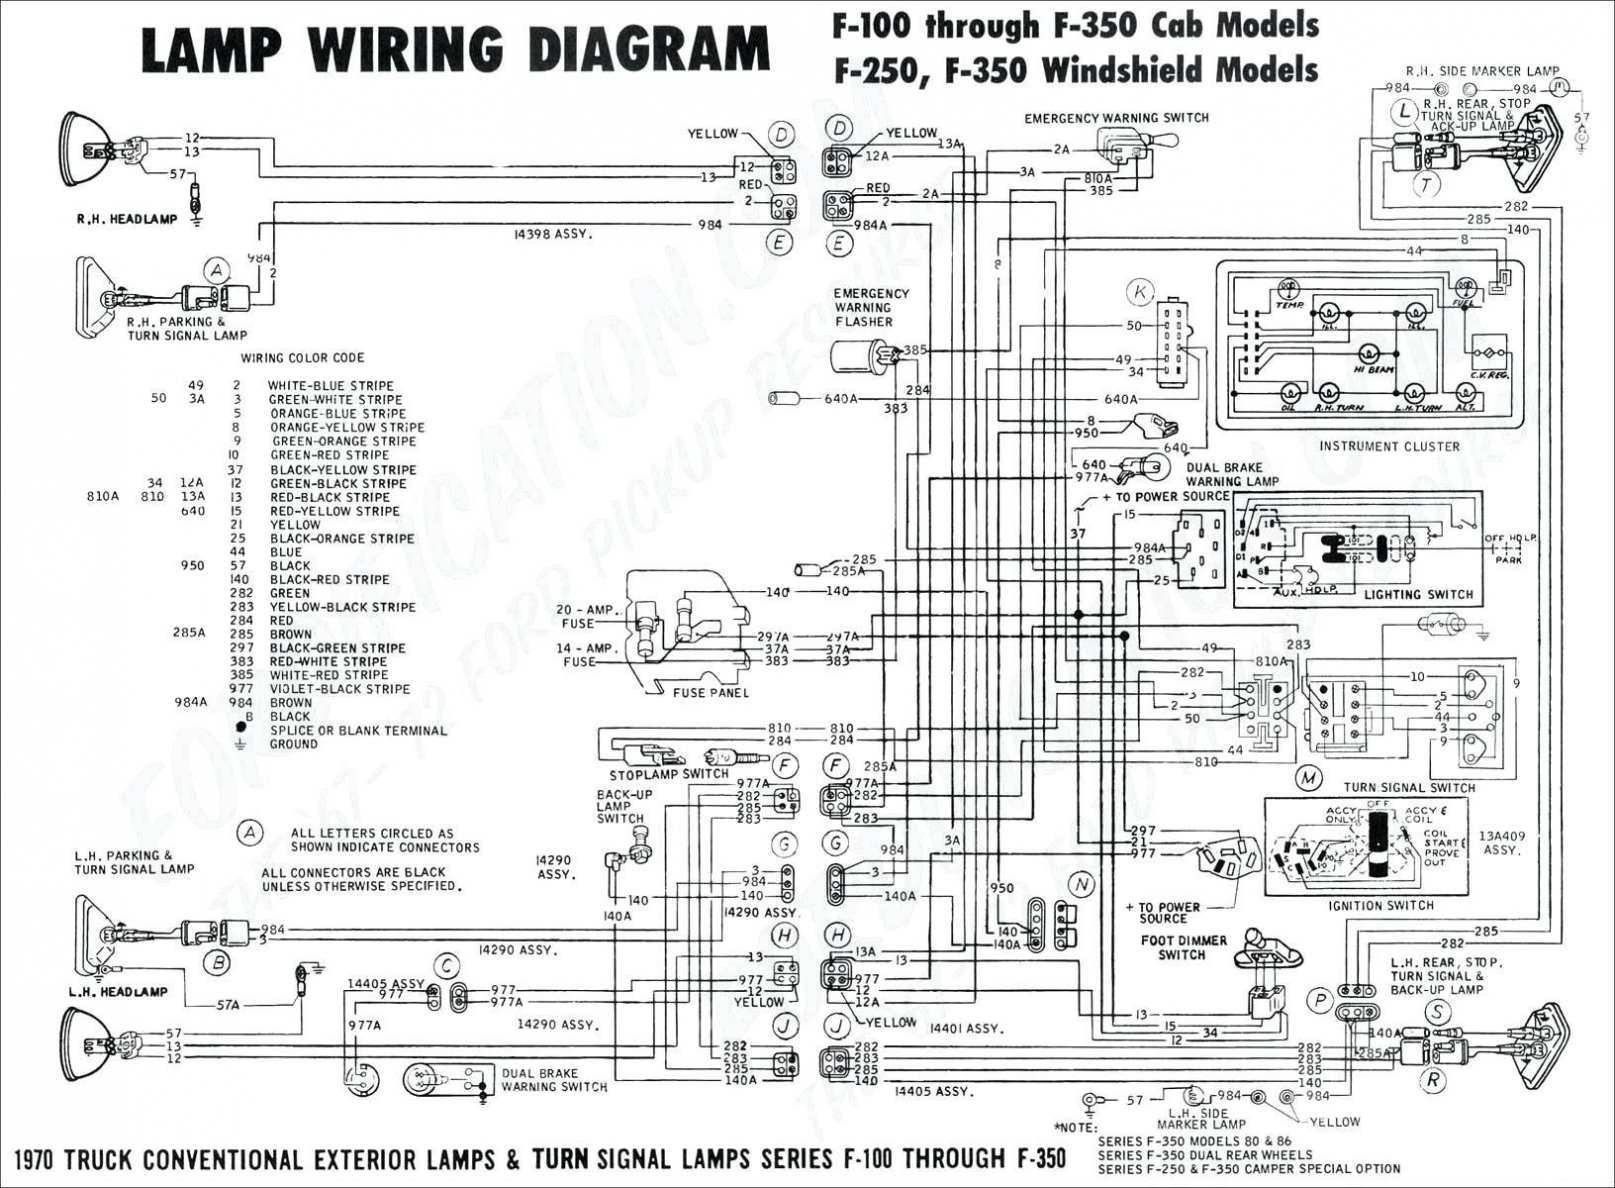 hight resolution of ford f150 wiring harness diagram wiring diagram site 2005 ford f150 trailer wiring harness diagram ford f150 wiring harness diagram